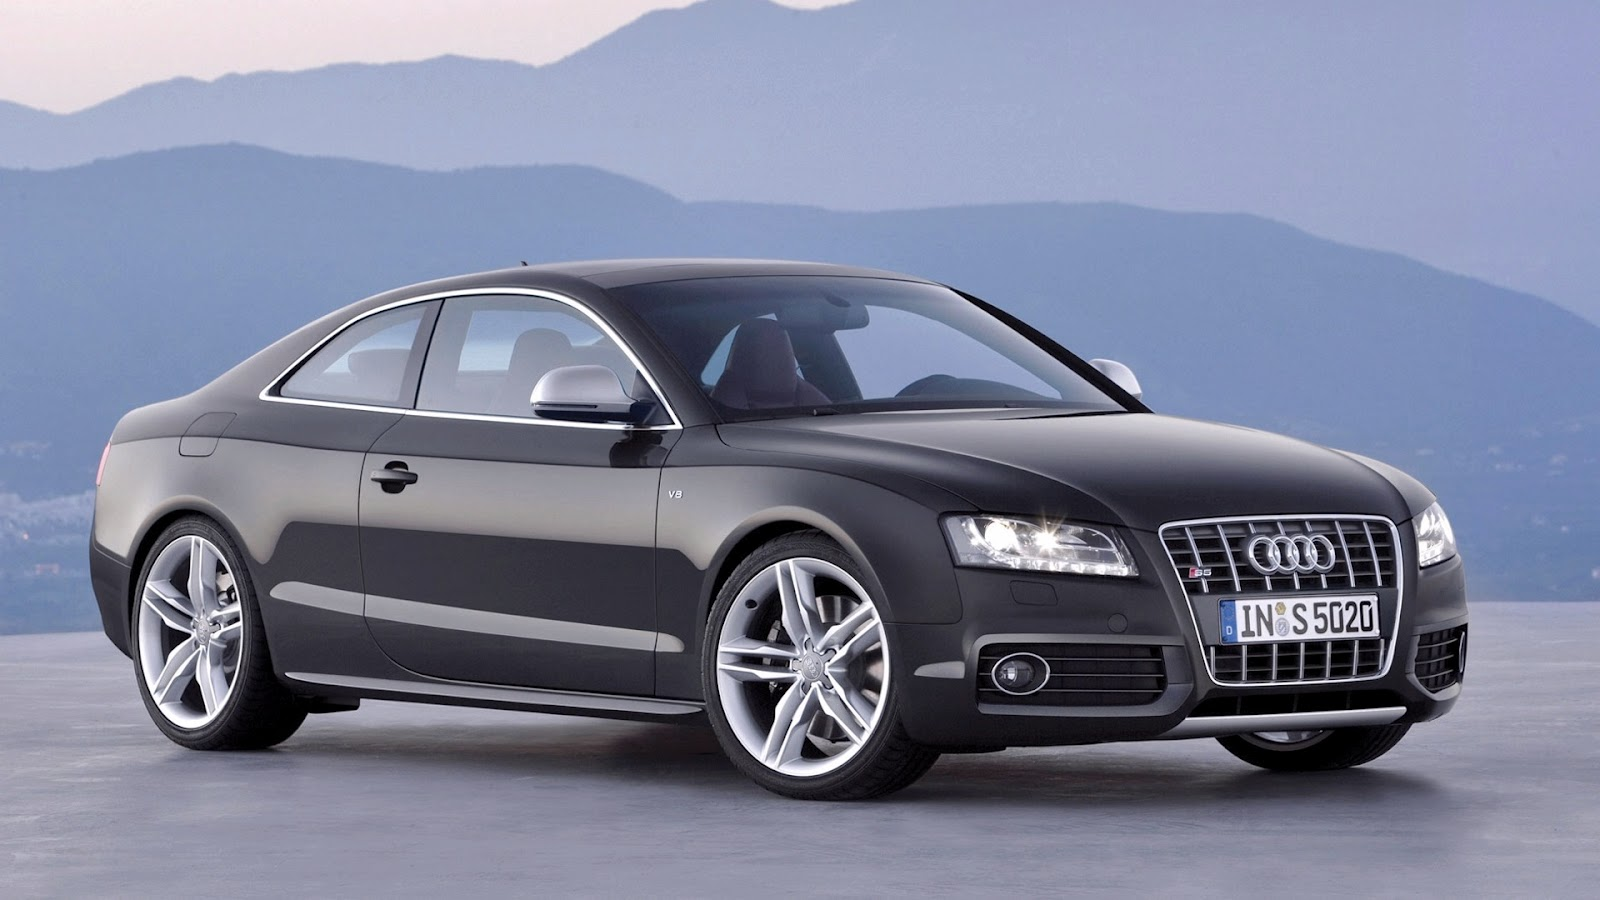 Audi Car Wallpapers Hd Cartoon Pictures